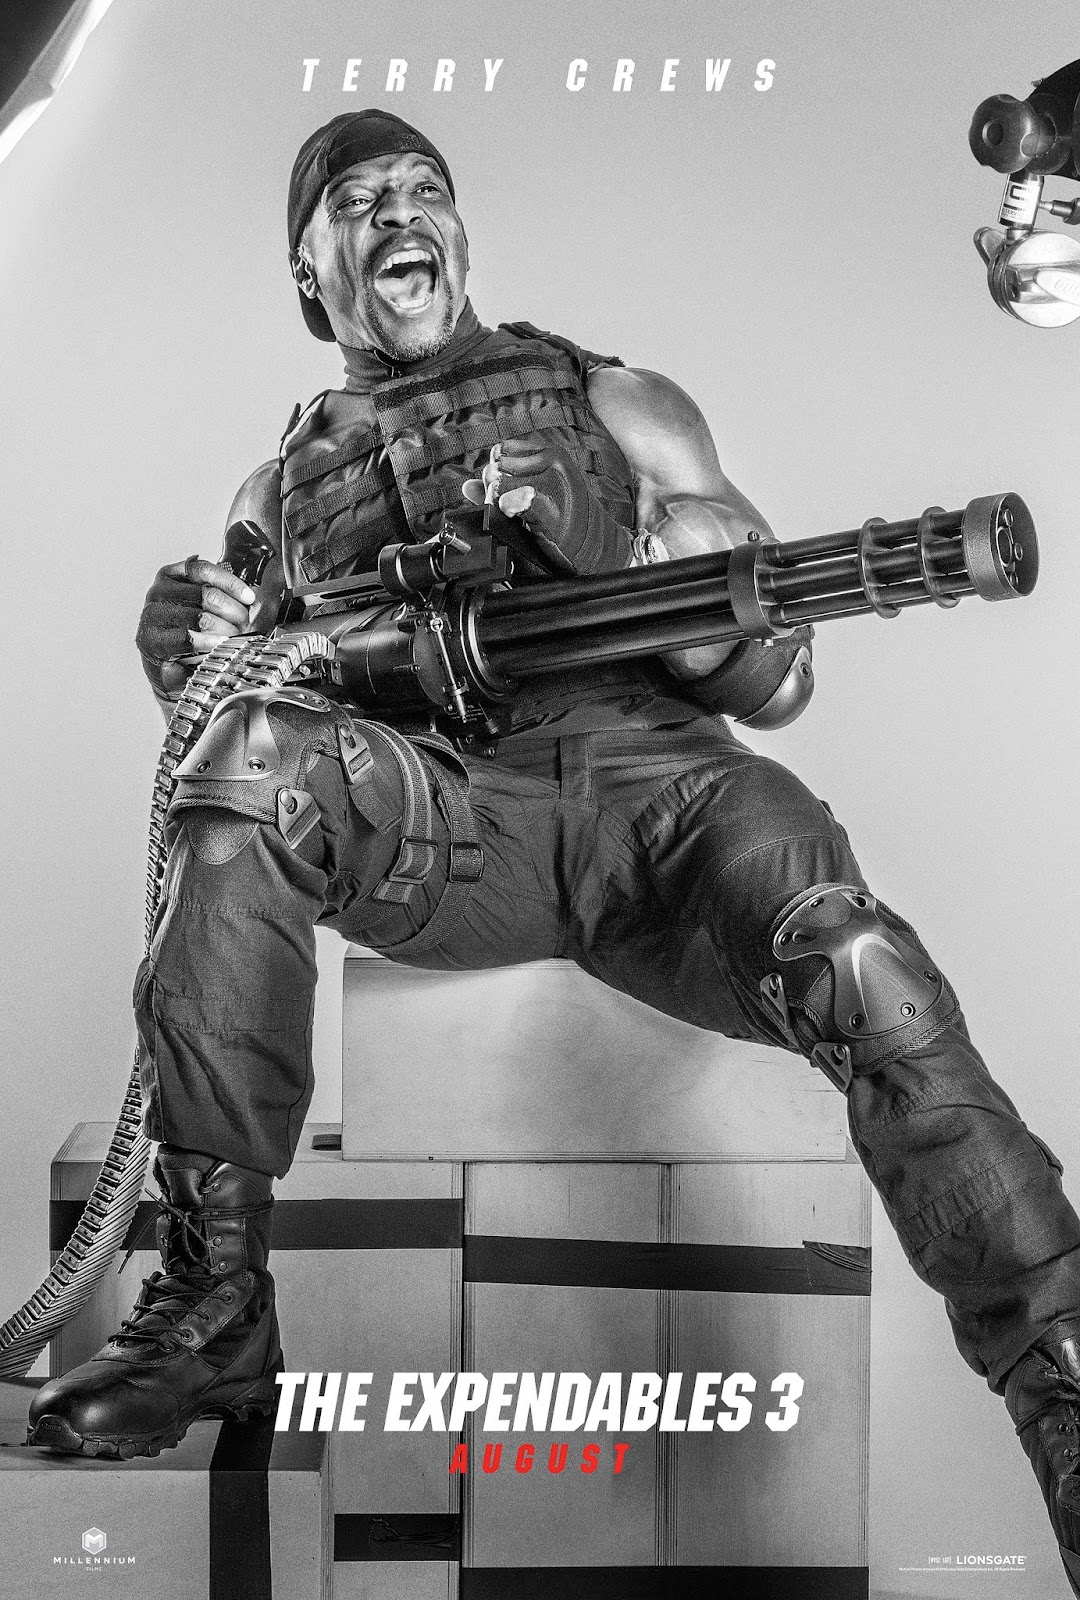 reel talk online expendables 3 character posters and